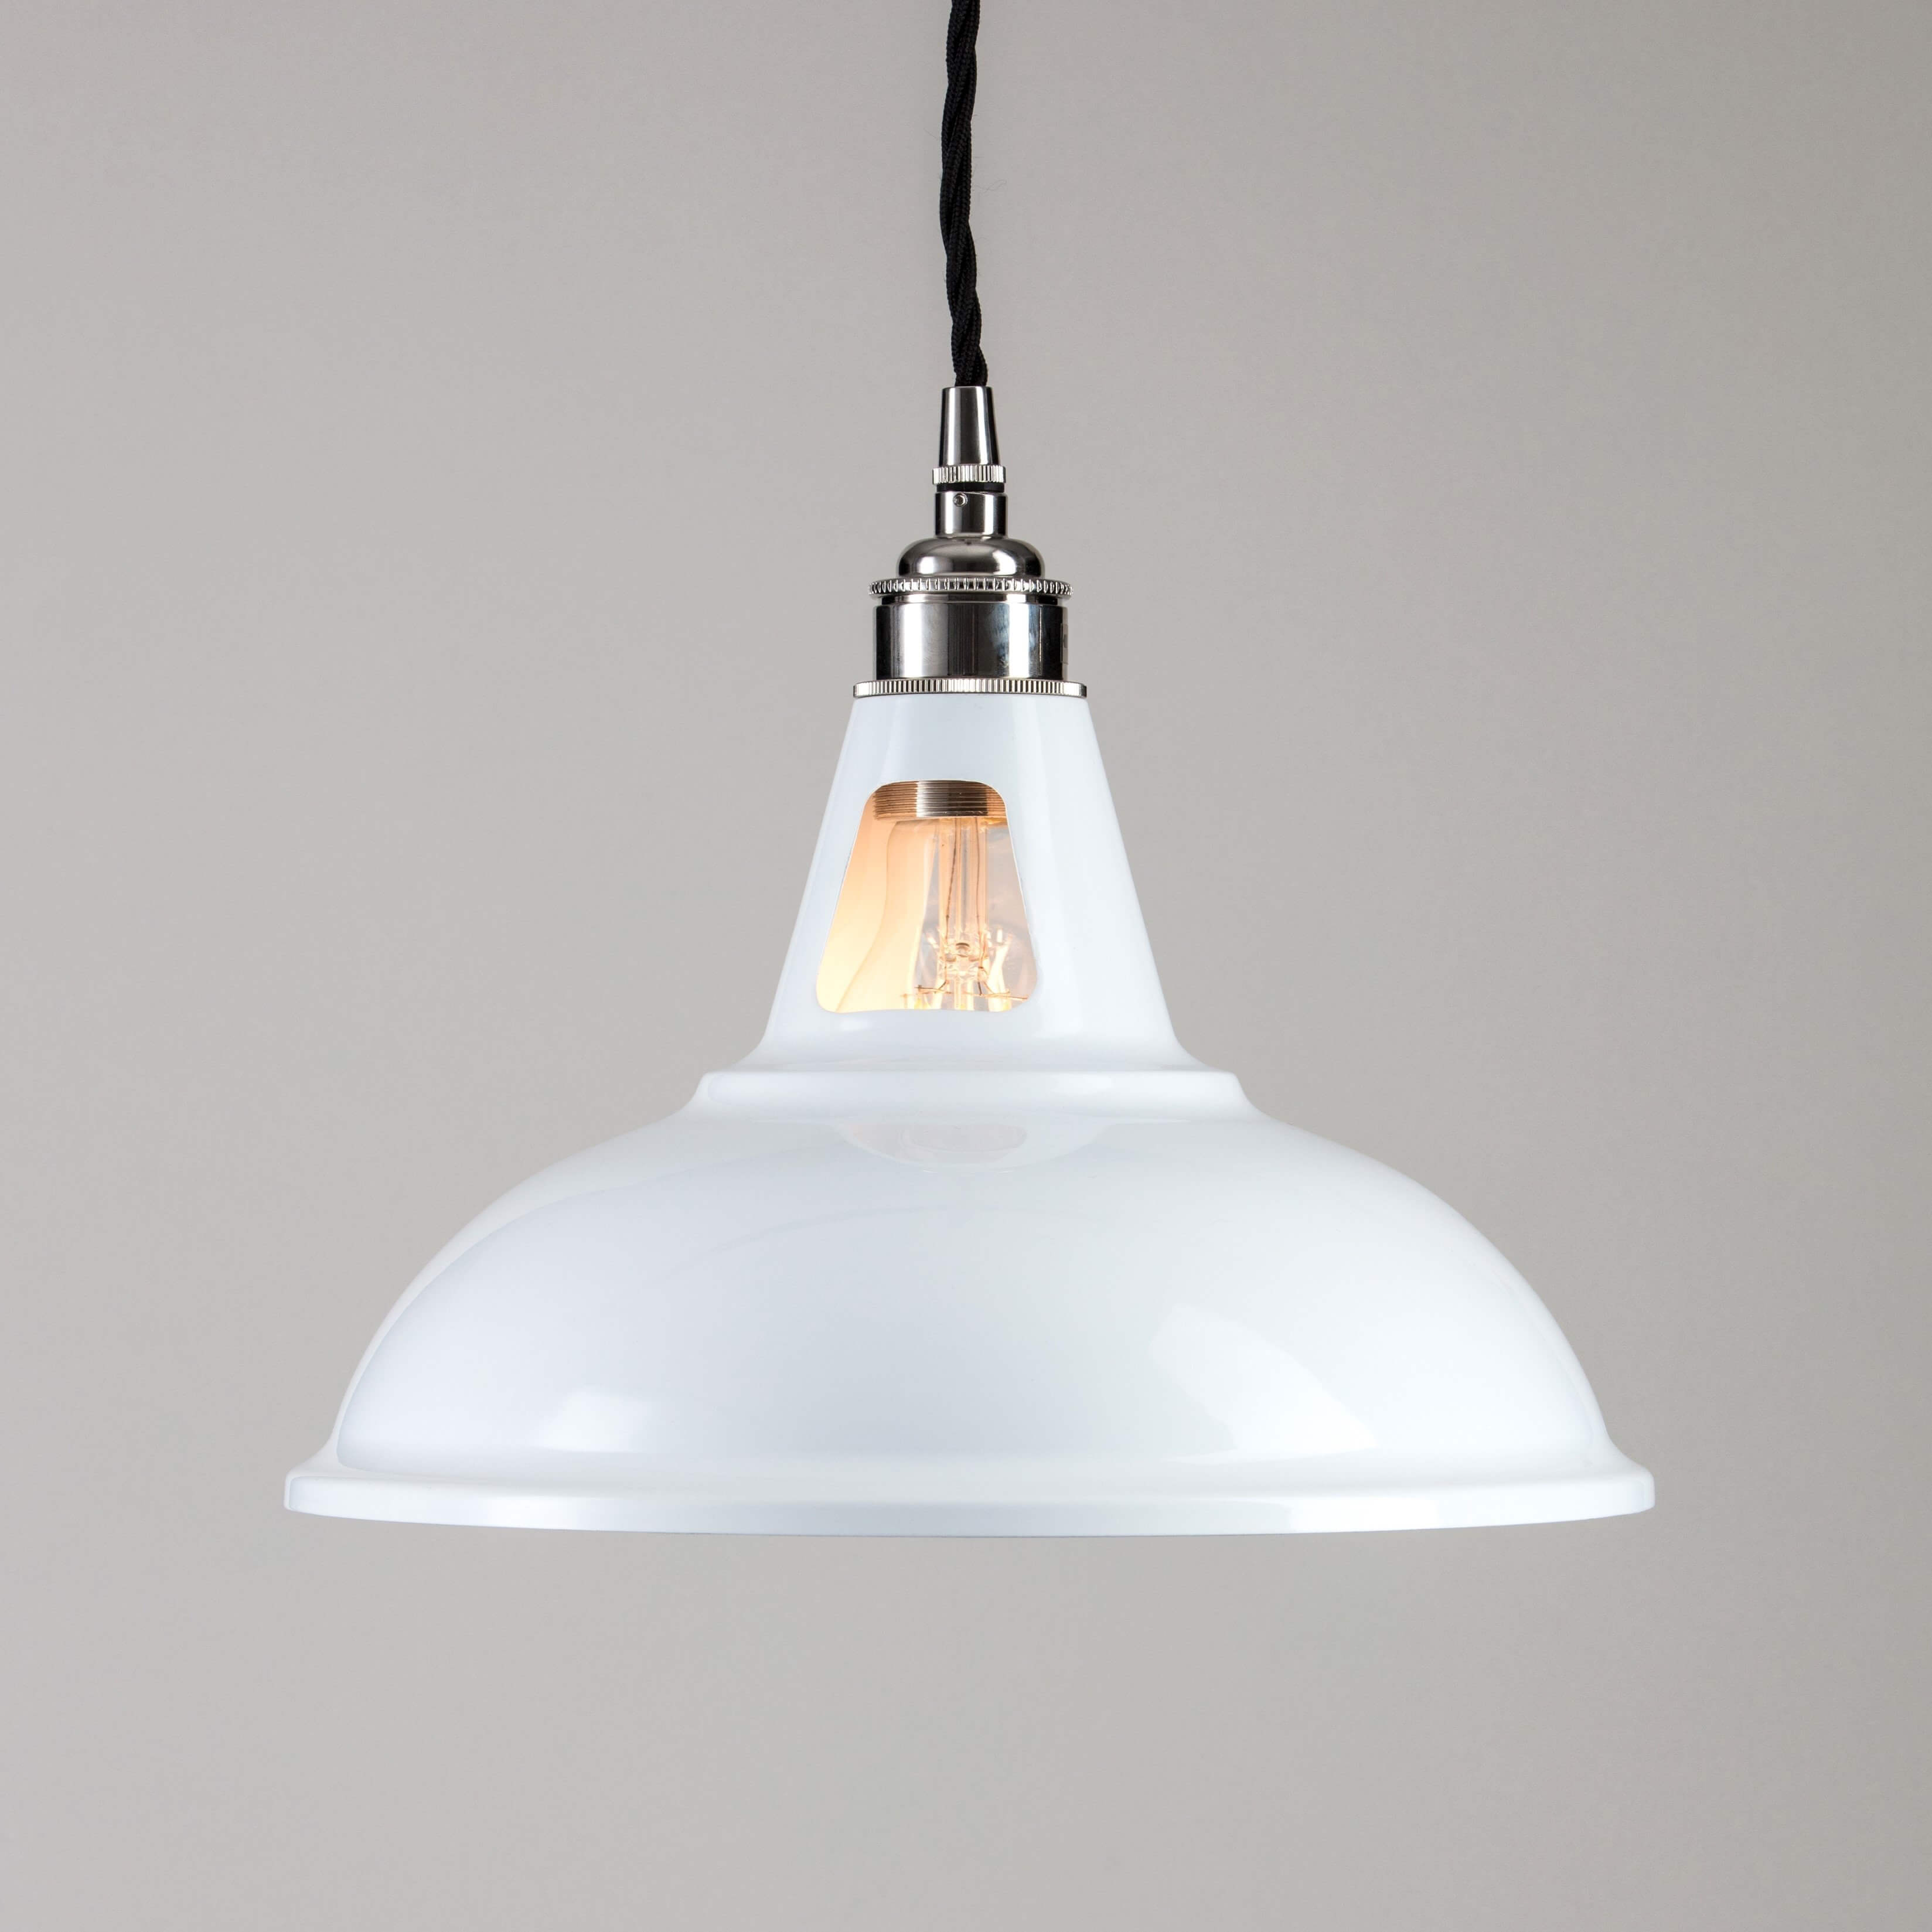 Factory Pendant Light - White